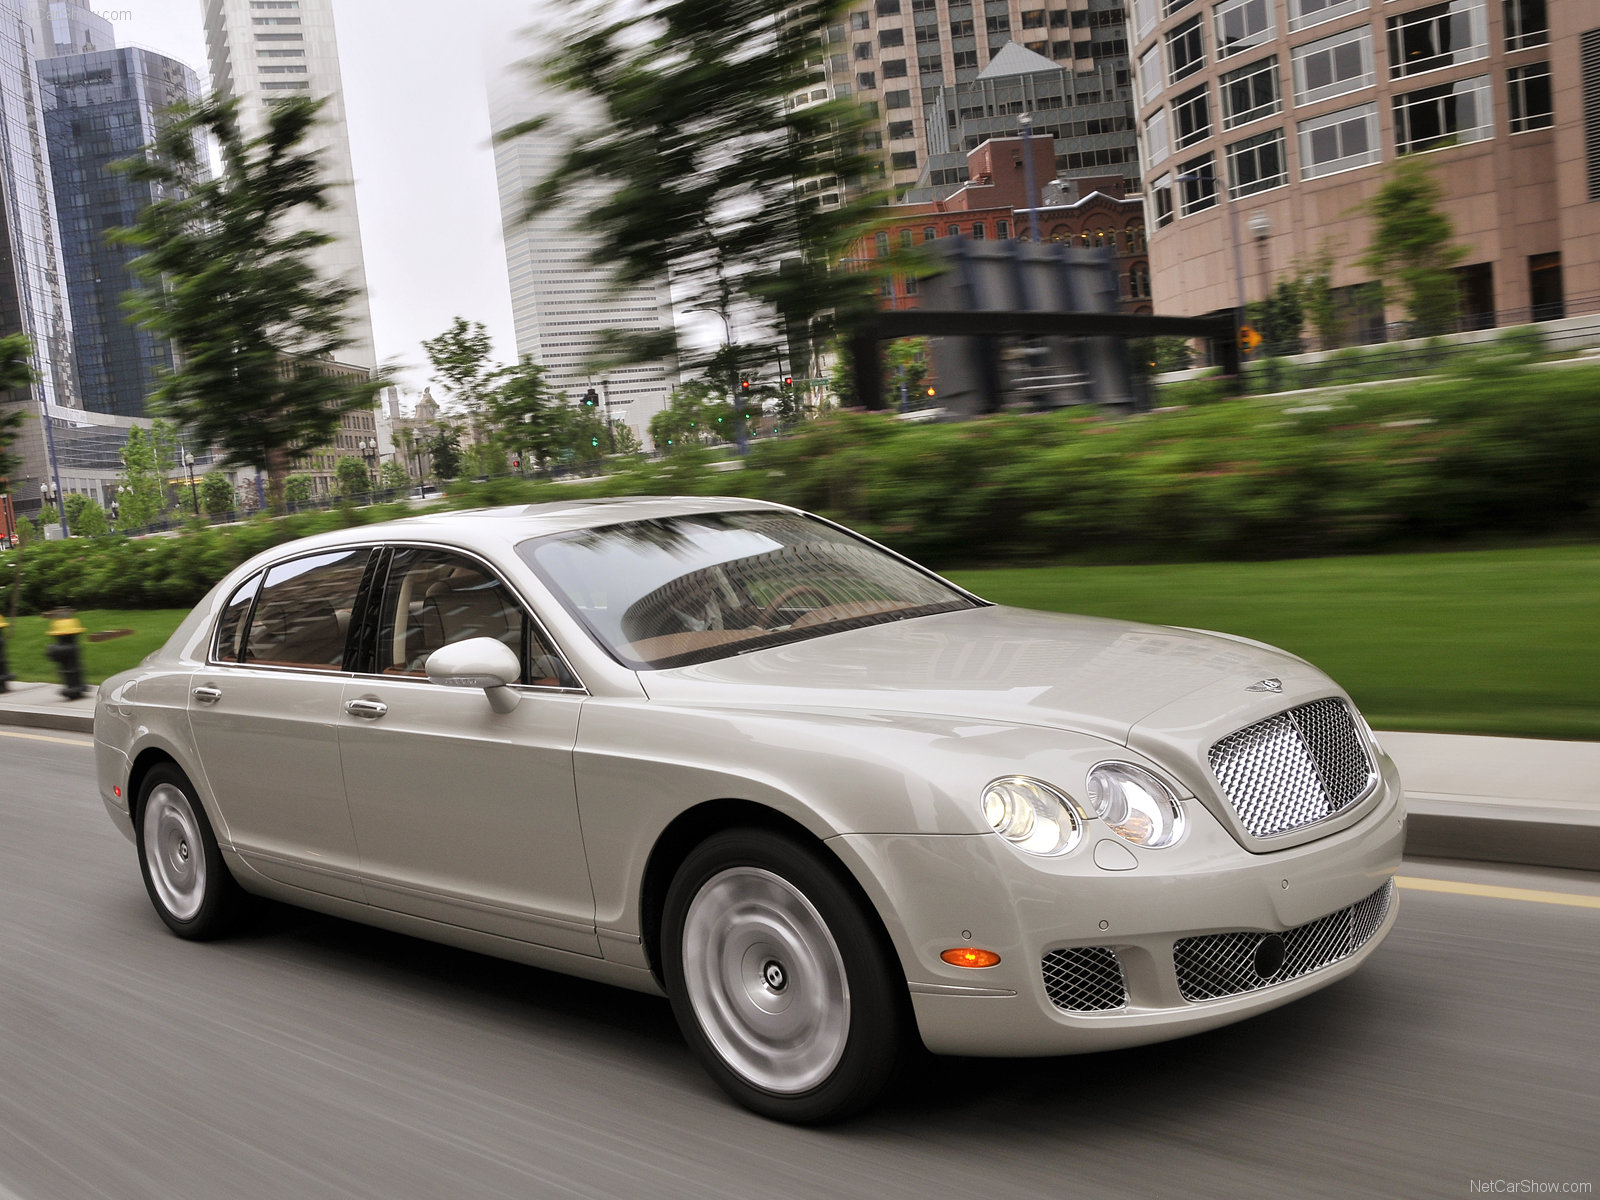 BENTLEY CONTINENTAL FLYING SPUR Review and photos